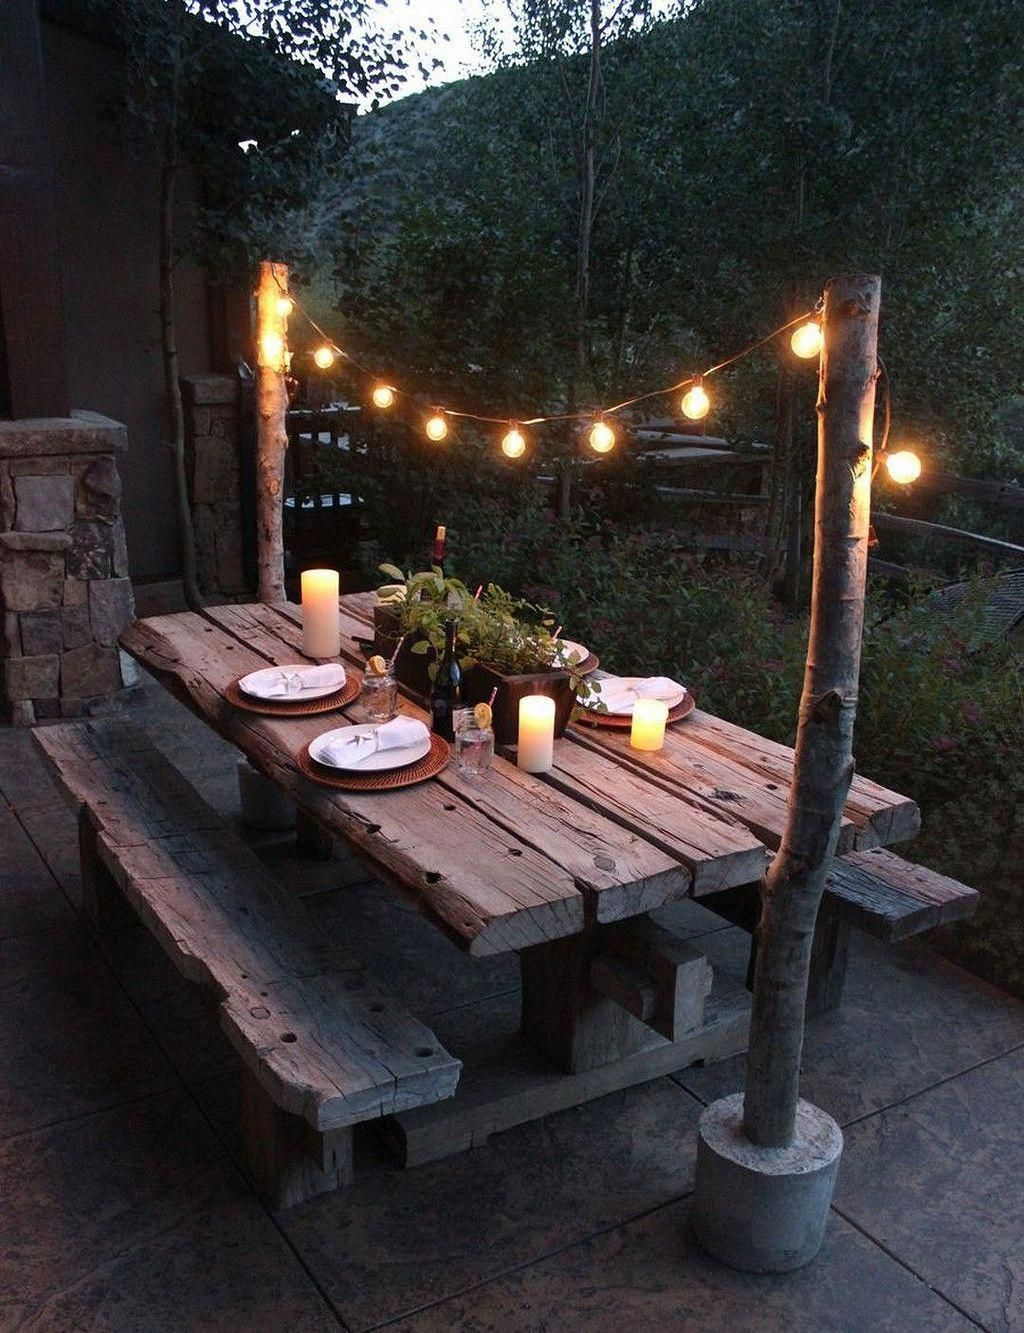 Excellent Home Decor Advice Tips Are Offered On Our Internet Site Take A Look And You Will Not Be Sorry You Did Ho In 2020 Outdoor Dekorationen Terrassen Beleuchtung